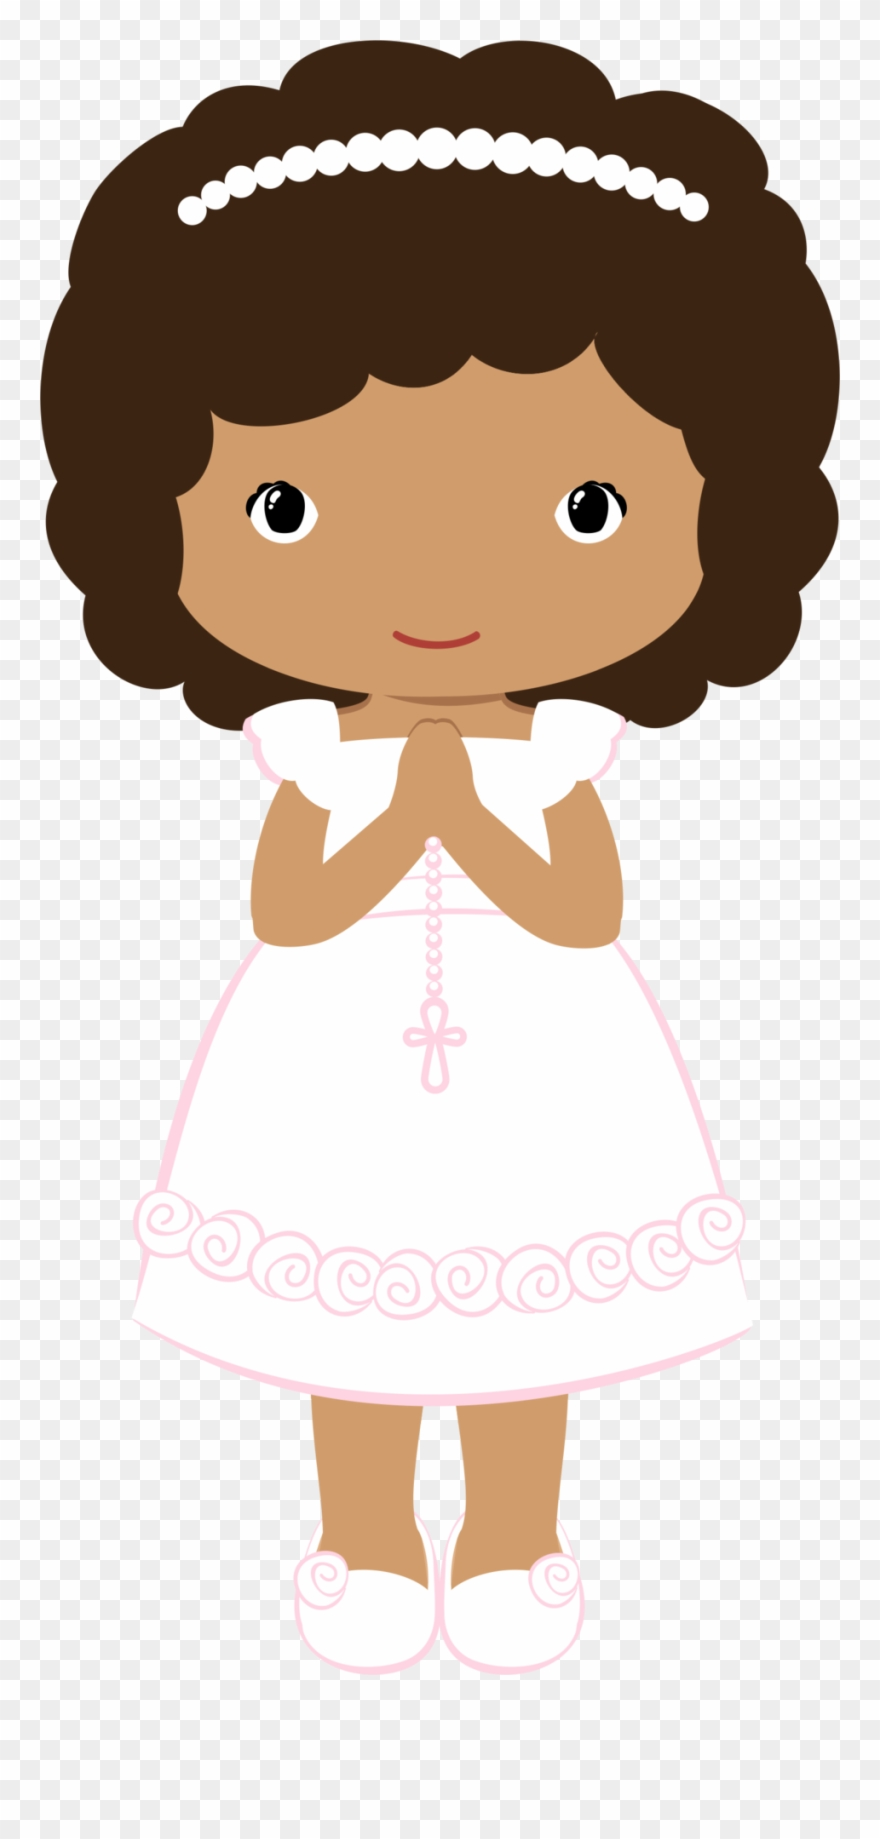 medium resolution of clipart girl first communion clipart communion girl png wave hair transparent png